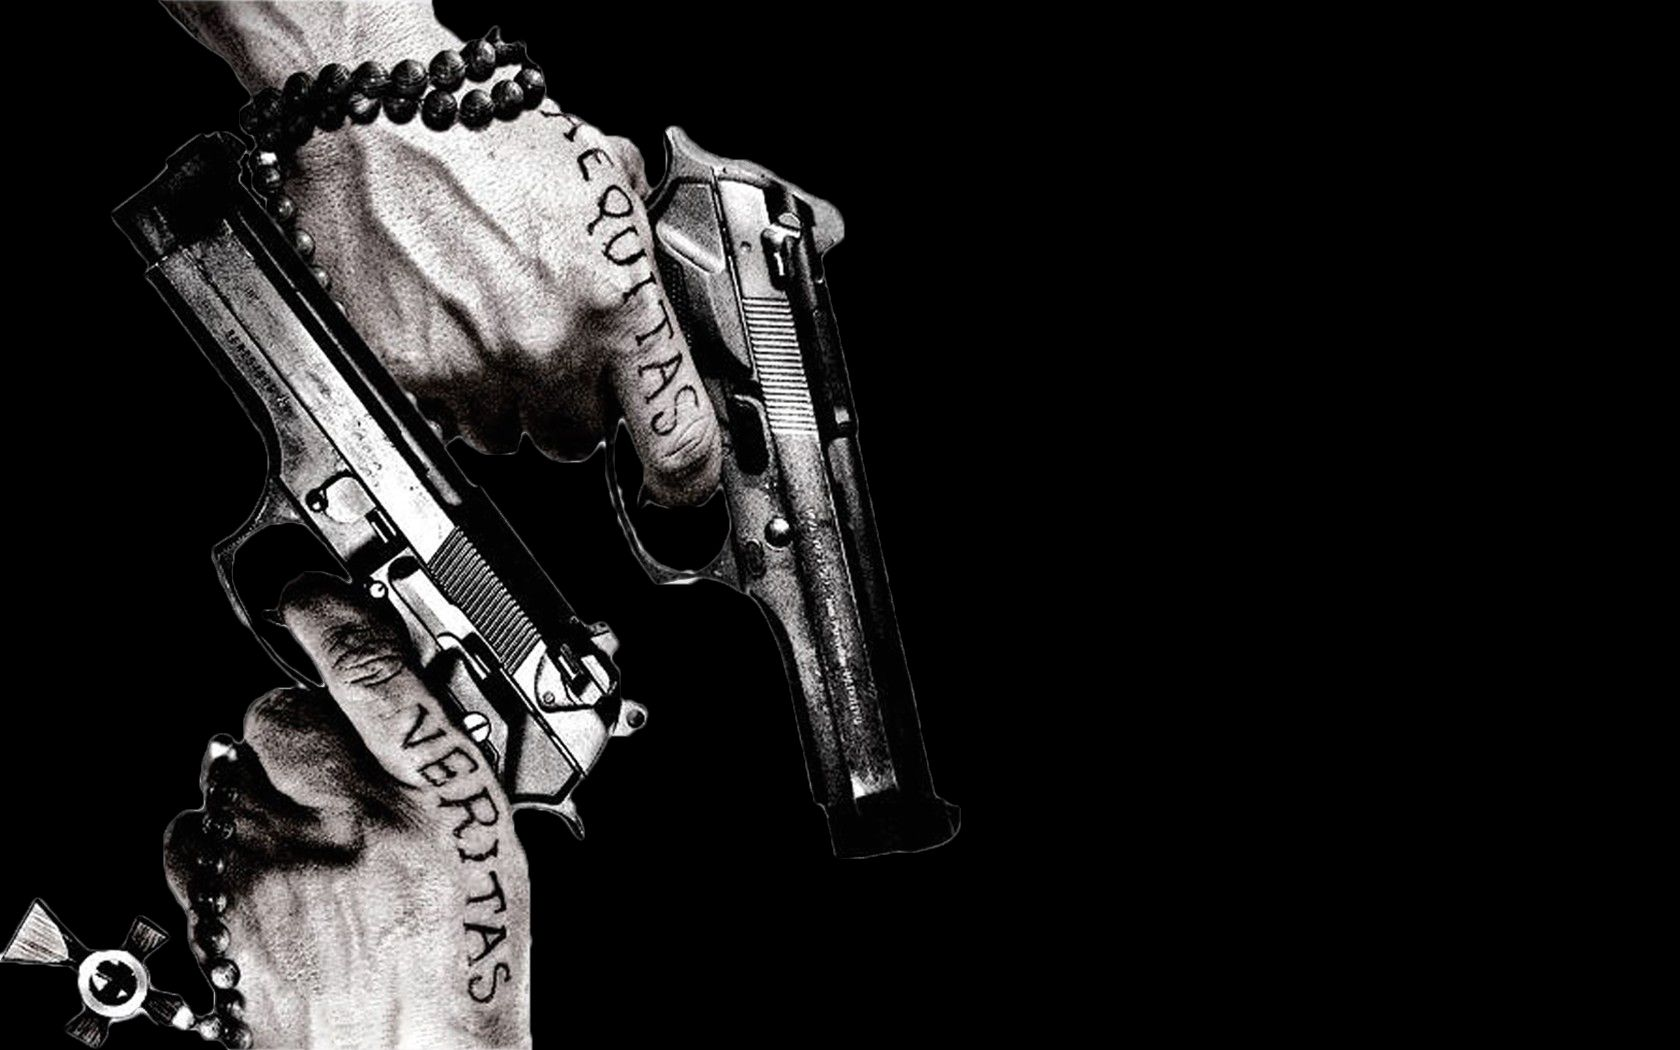 1680x1050 The Boondock Saints Wallpaper and Background Image | 1680x1050 | ID ...